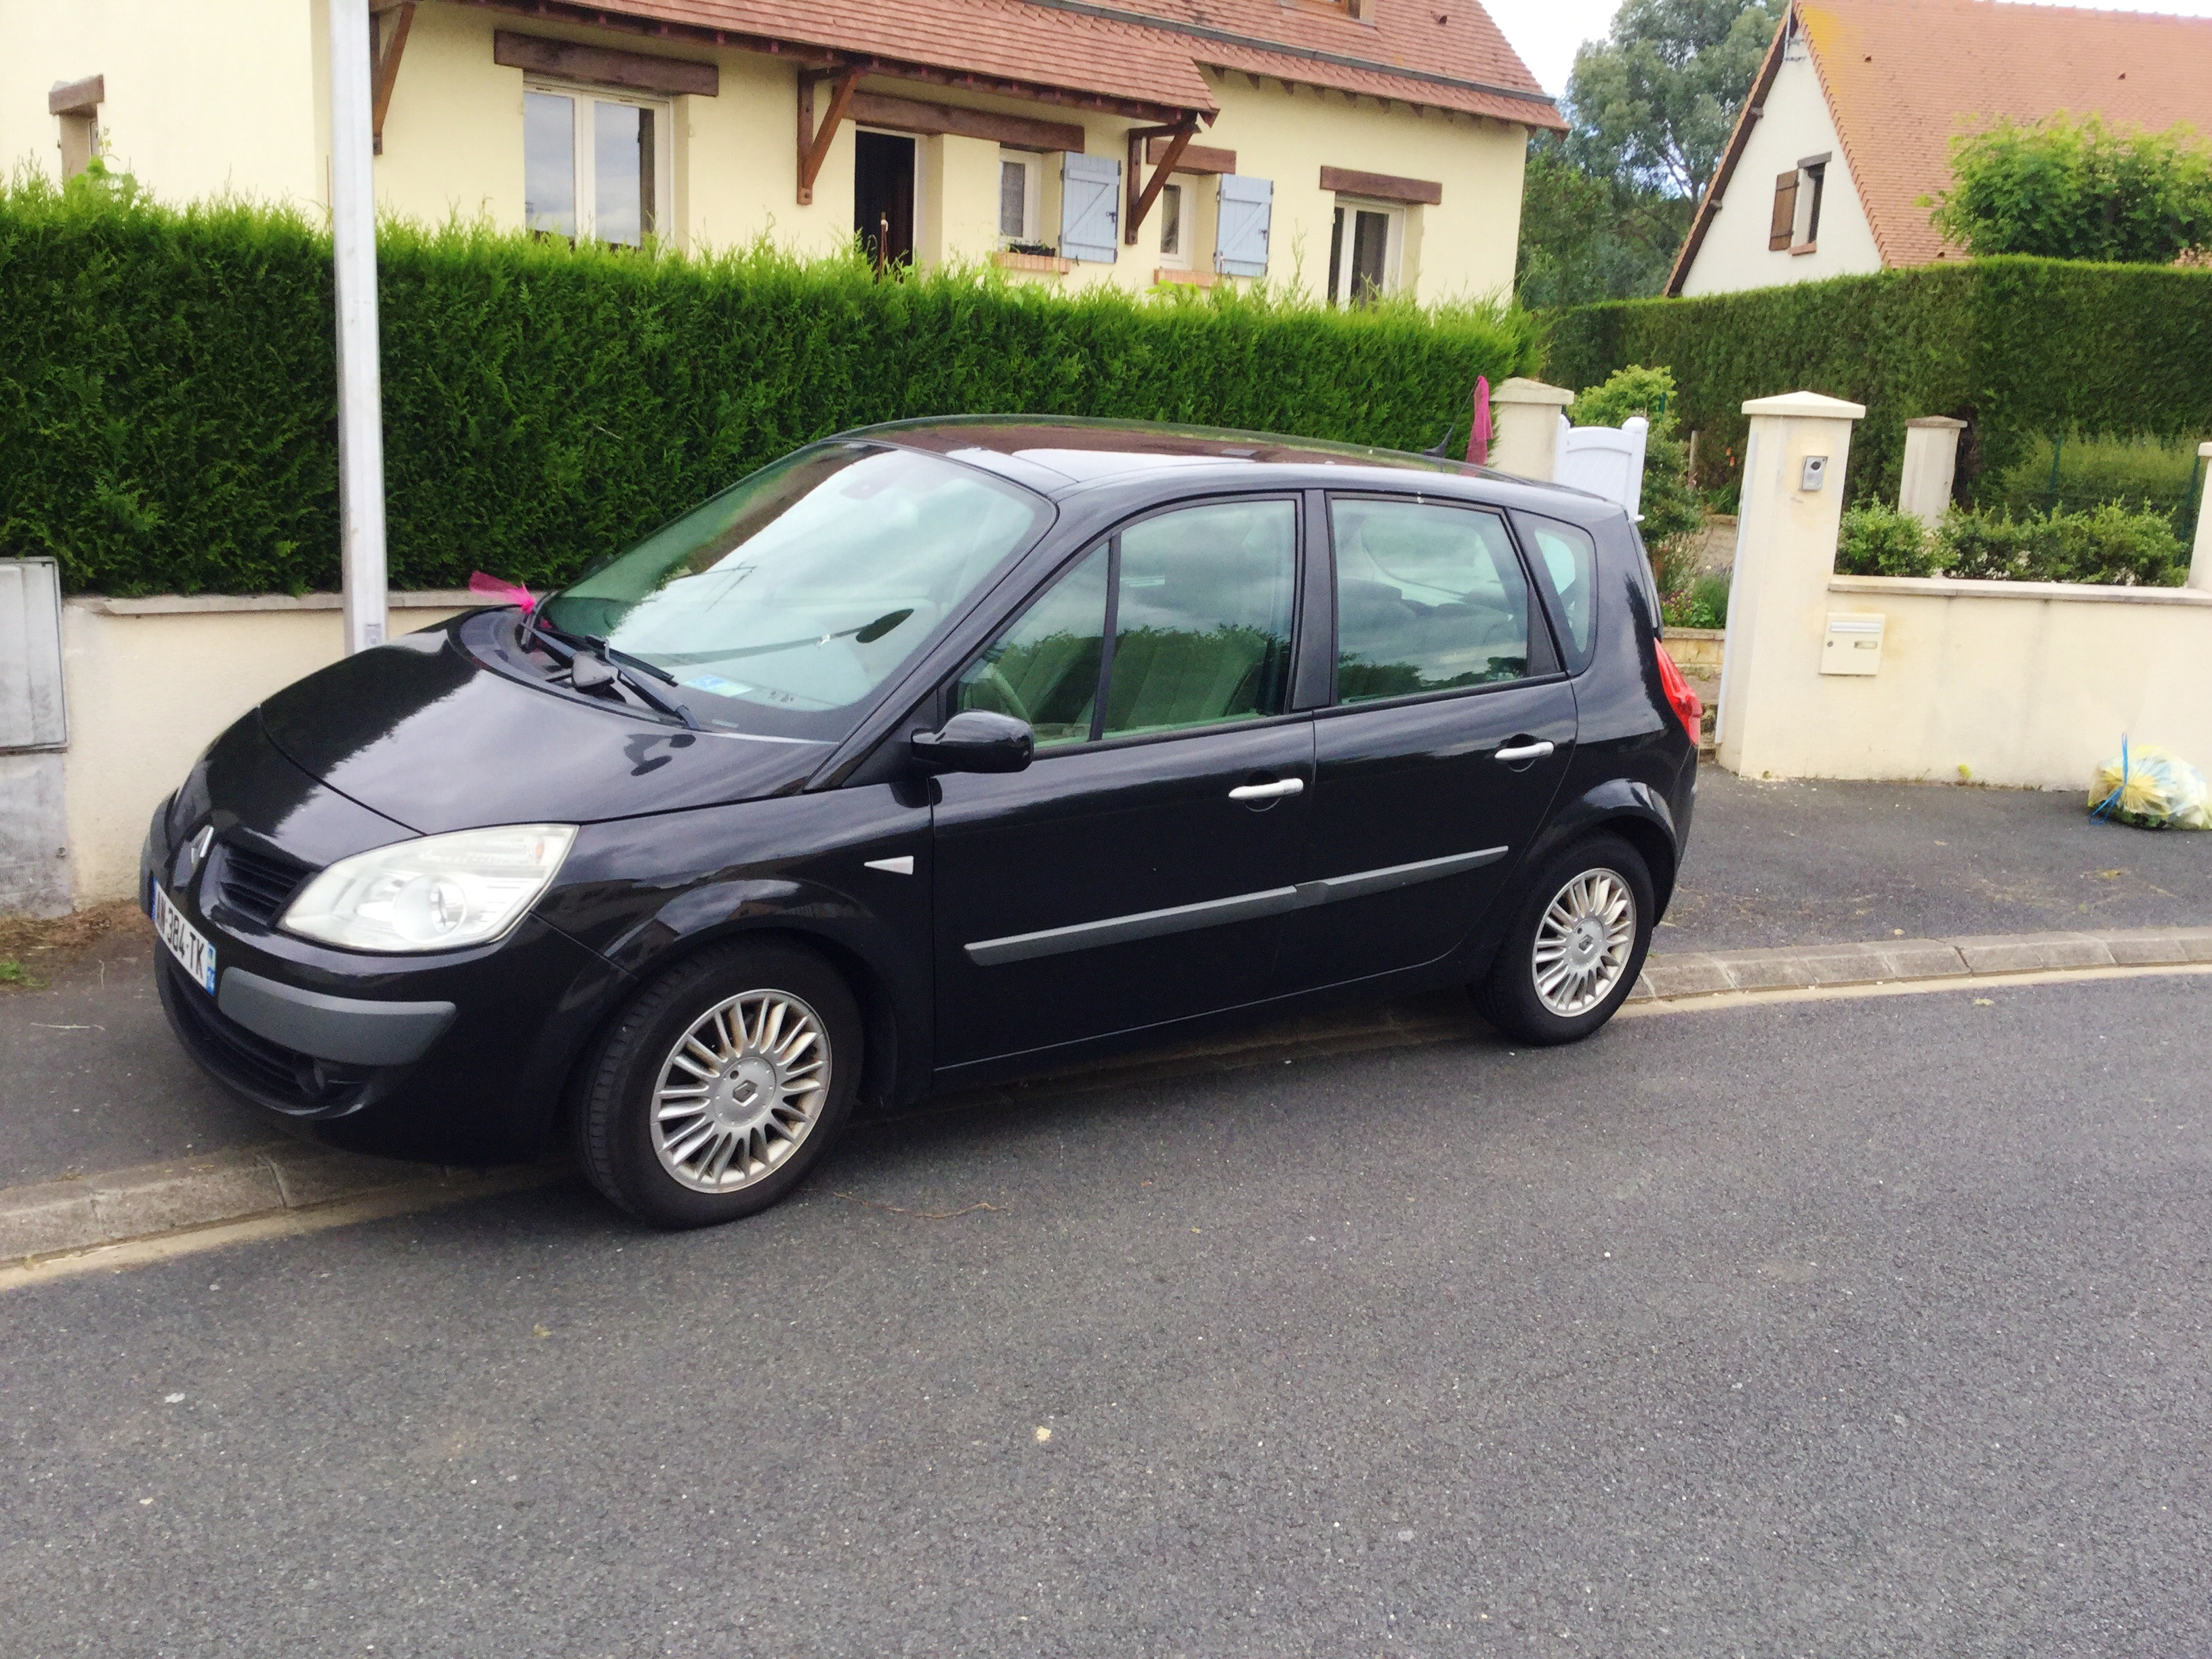 Renault Scénic 2 DCI luxe Bose, 2009, Diesel - Familiale Caen (14)